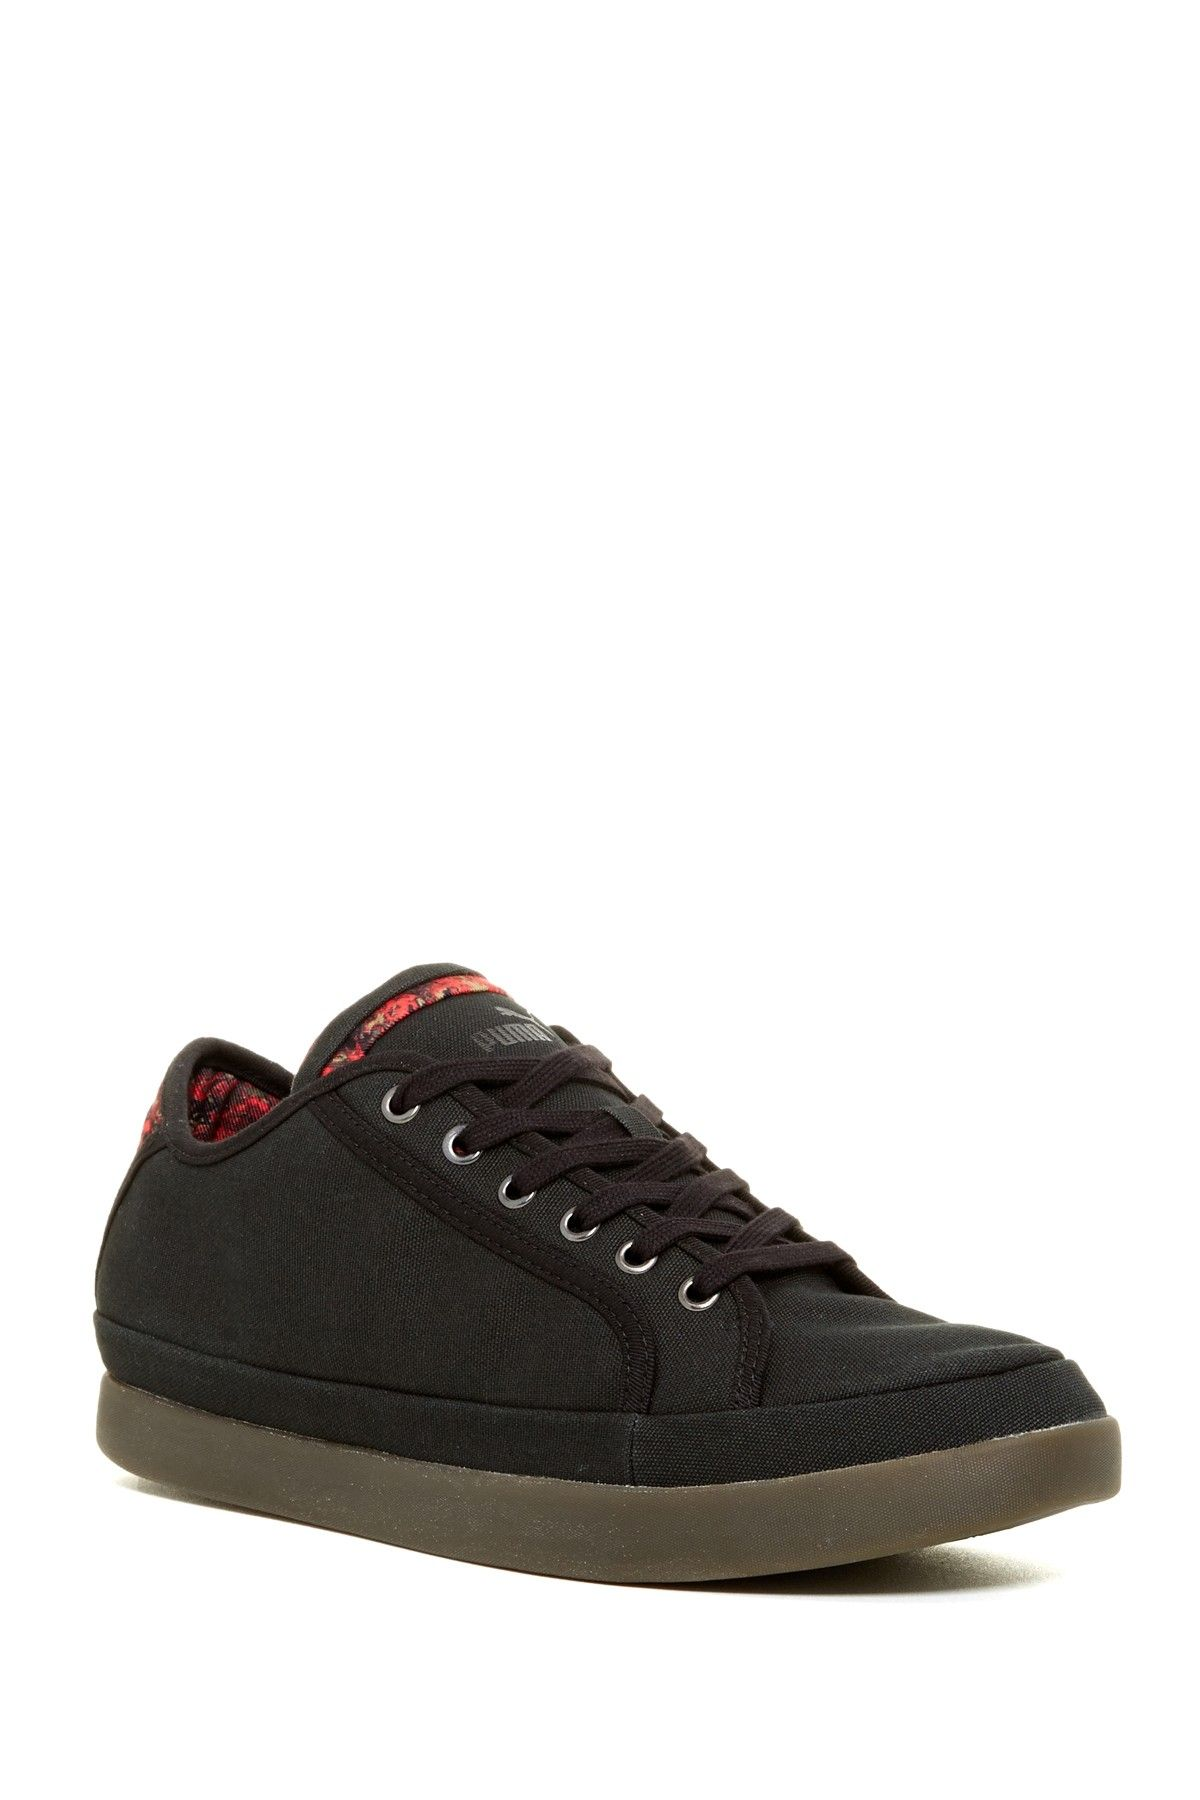 PUMA | MCQ Rabble EVO Lo Sneaker | Sneakers, Evo, Fashion